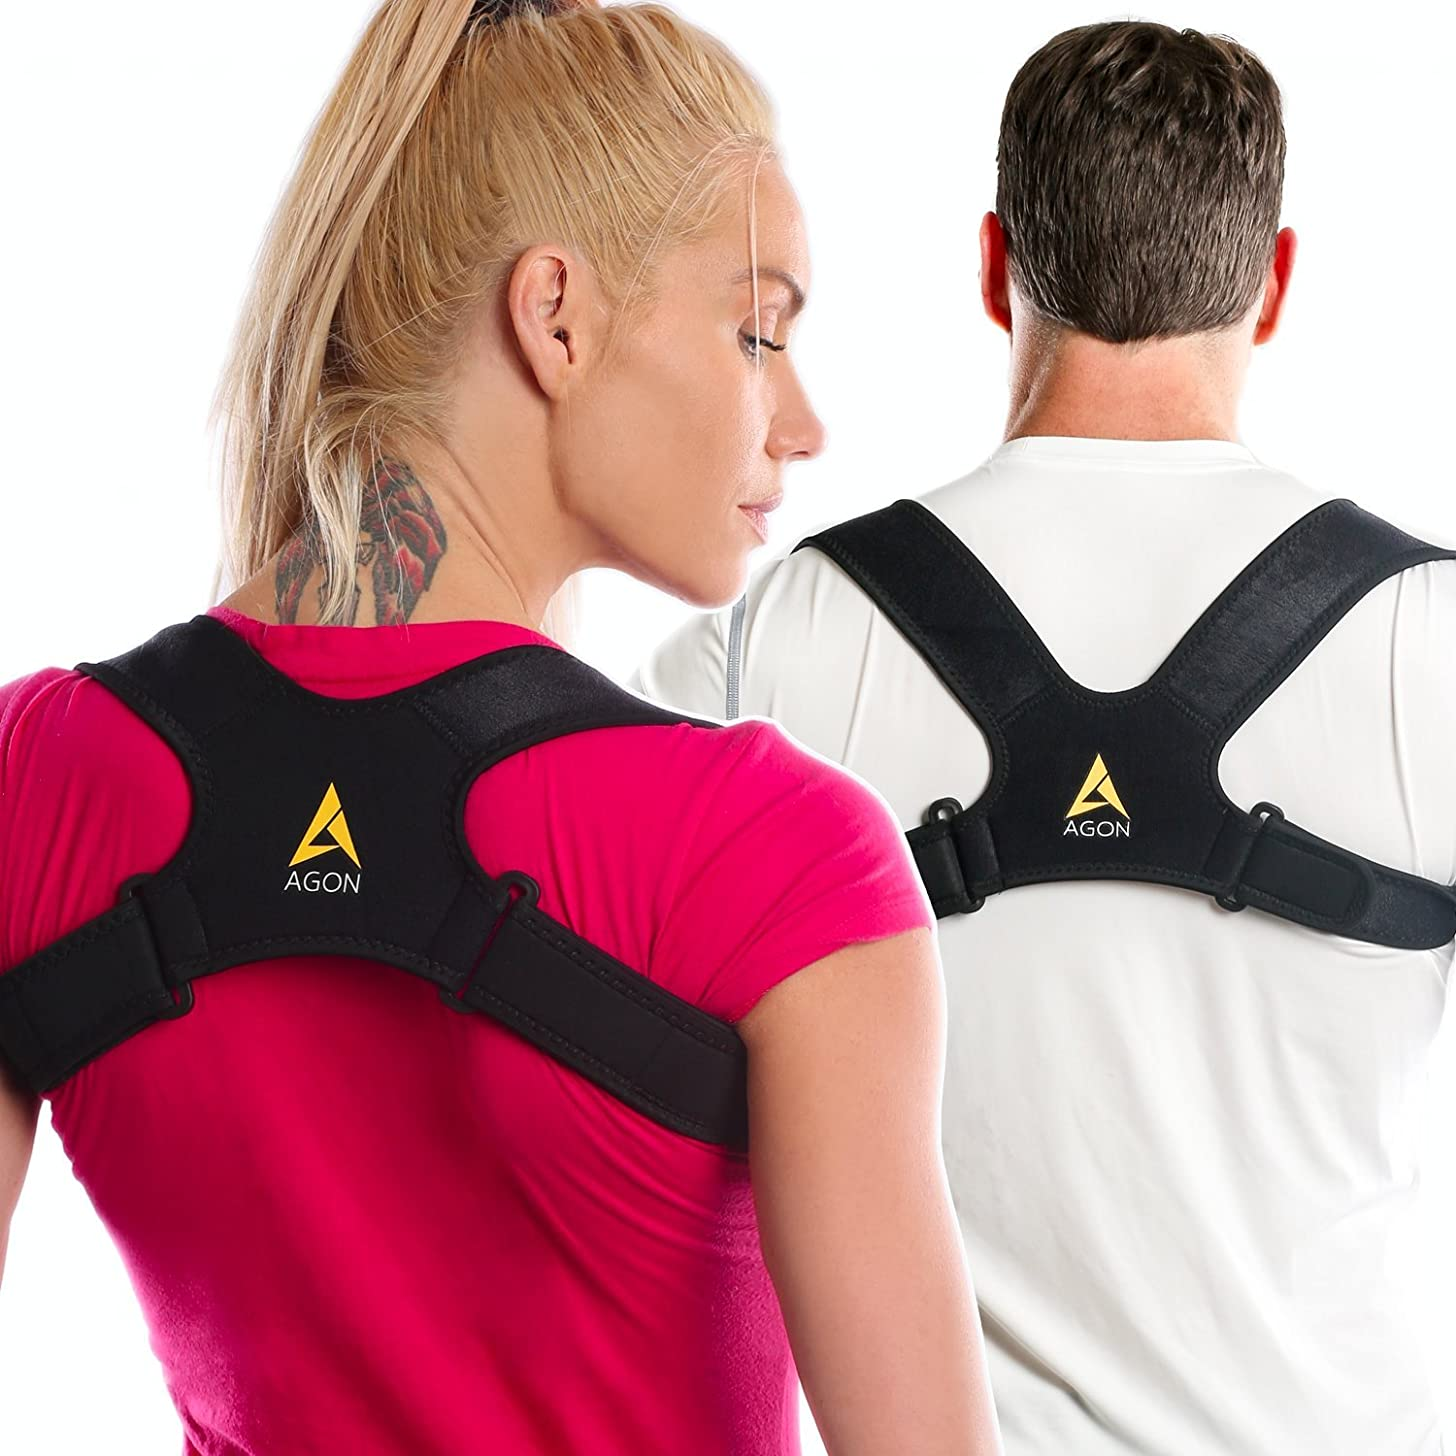 Agon? Posture Corrector Clavicle Brace Support Strap, Posture Brace Medical Device to Improve Bad Posture, Thoracic Kyphosis, Shoulder Alignment Upper Back Pain Relief for Men and Women